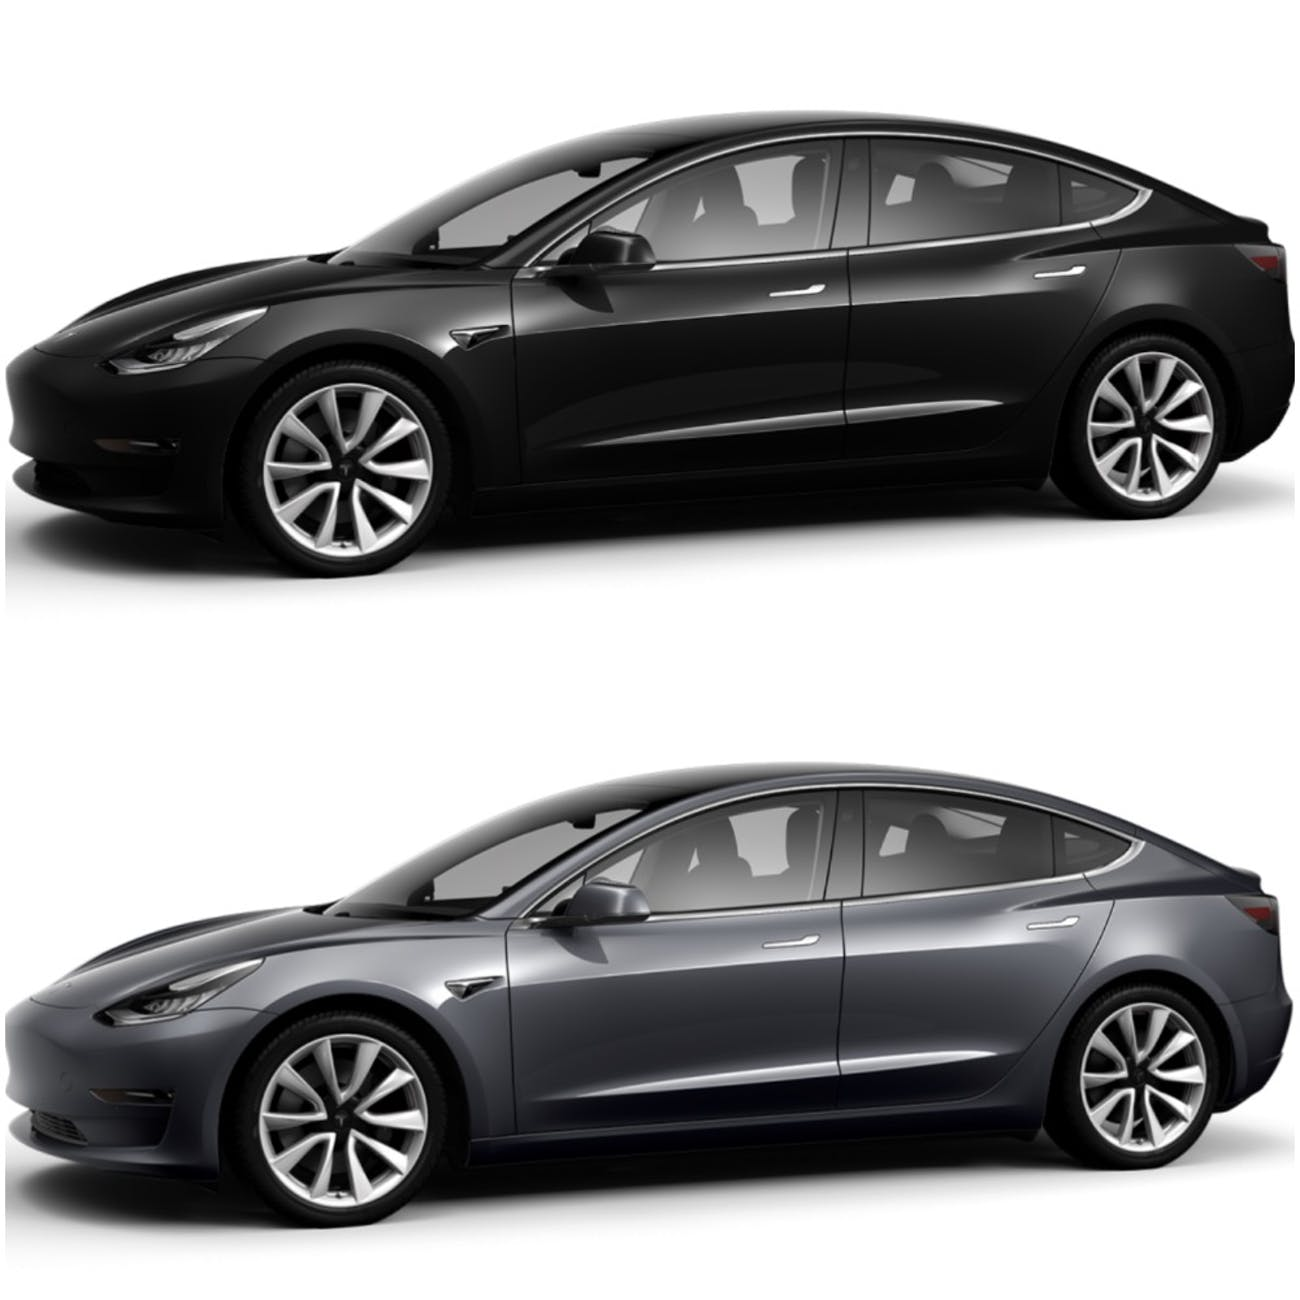 Tesla Model 3 Colors That Are Being Removed